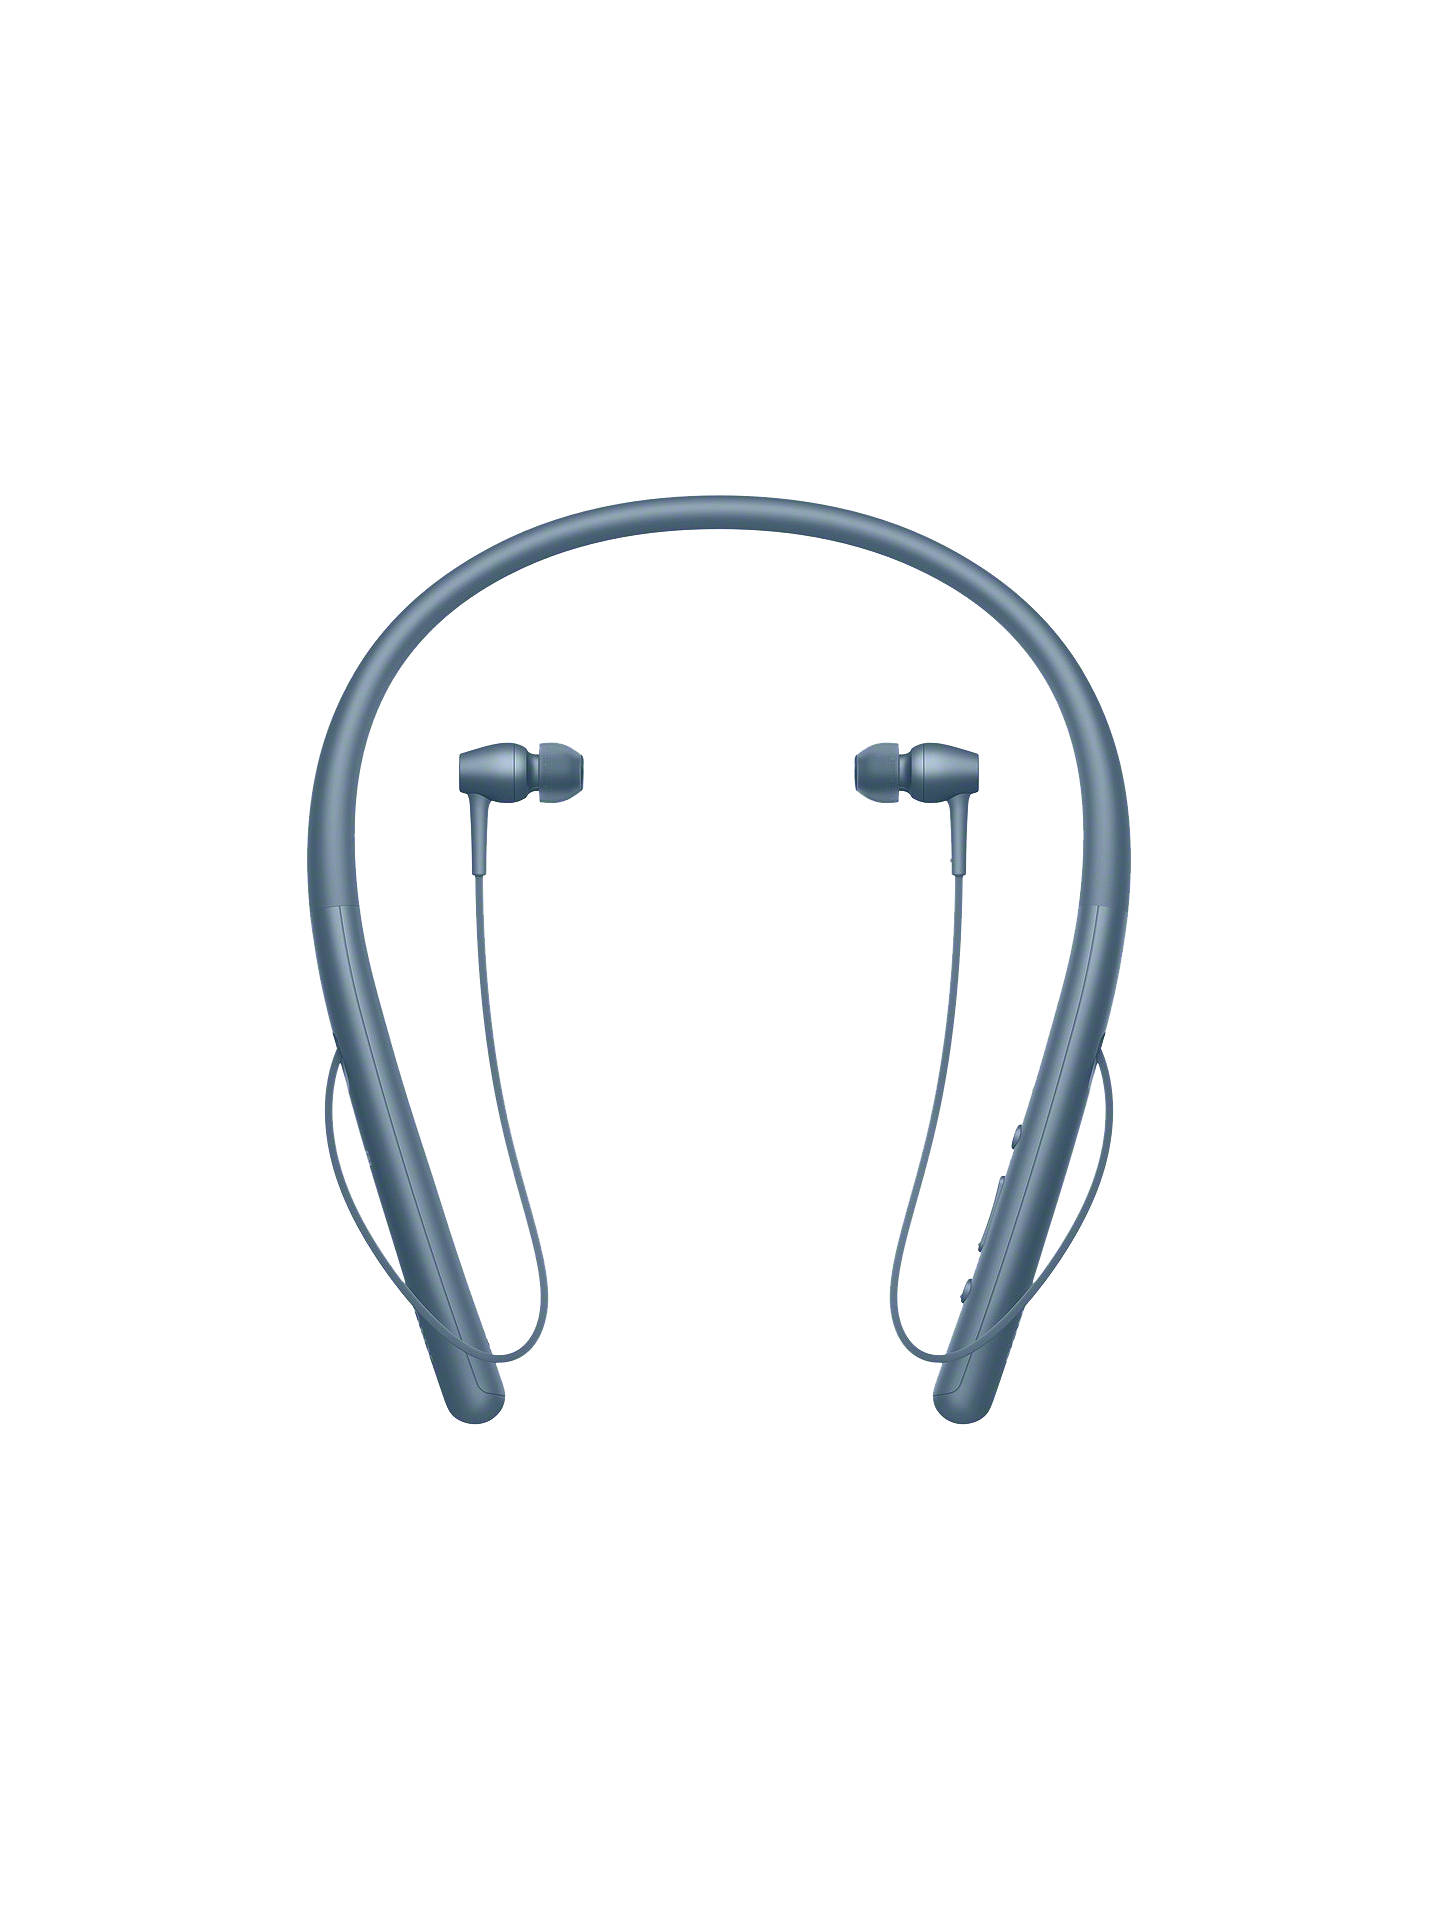 BuySony WI-H700 h.ear in 2 Wireless Bluetooth High Resolution In-Ear Headphones with NFC One-Touch & Neckband, Moonlit Blue Online at johnlewis.com